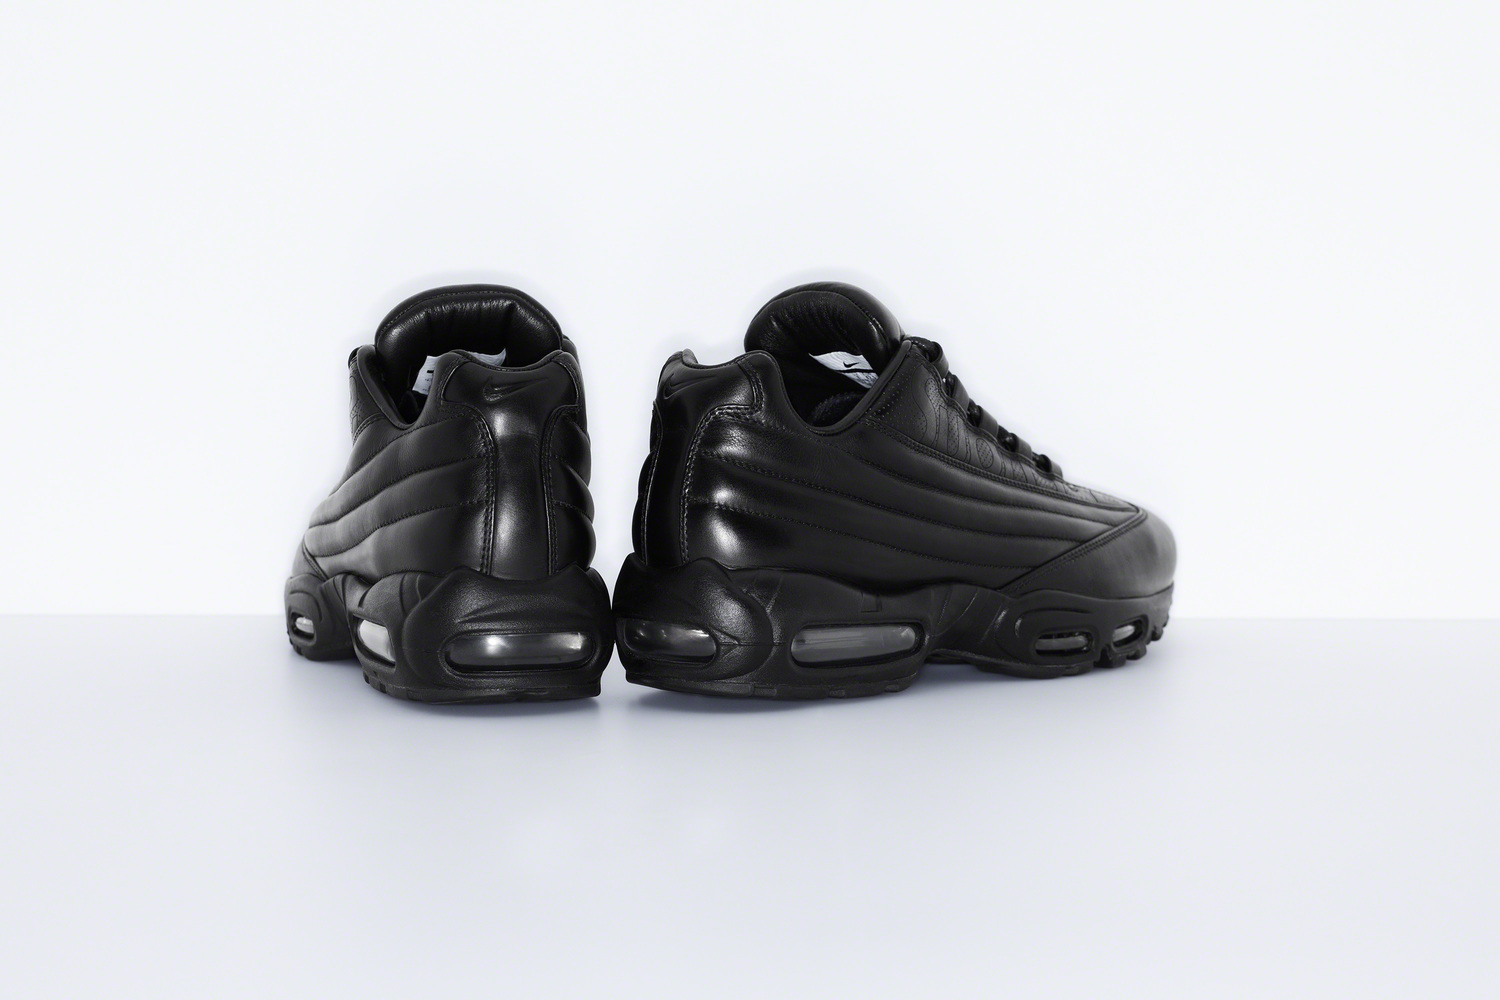 supreme-nike-air-max-95-lux-19aw-19fw-release-20191109-week11